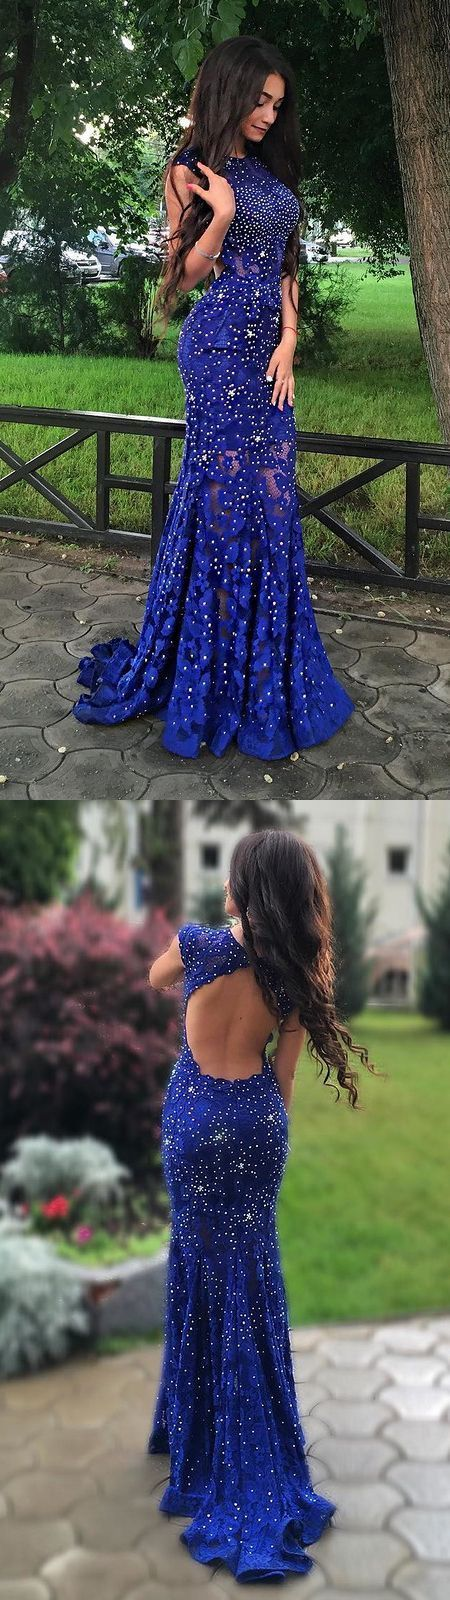 High Fashion Mermaid Blue Lace Long Prom/Evening Dress